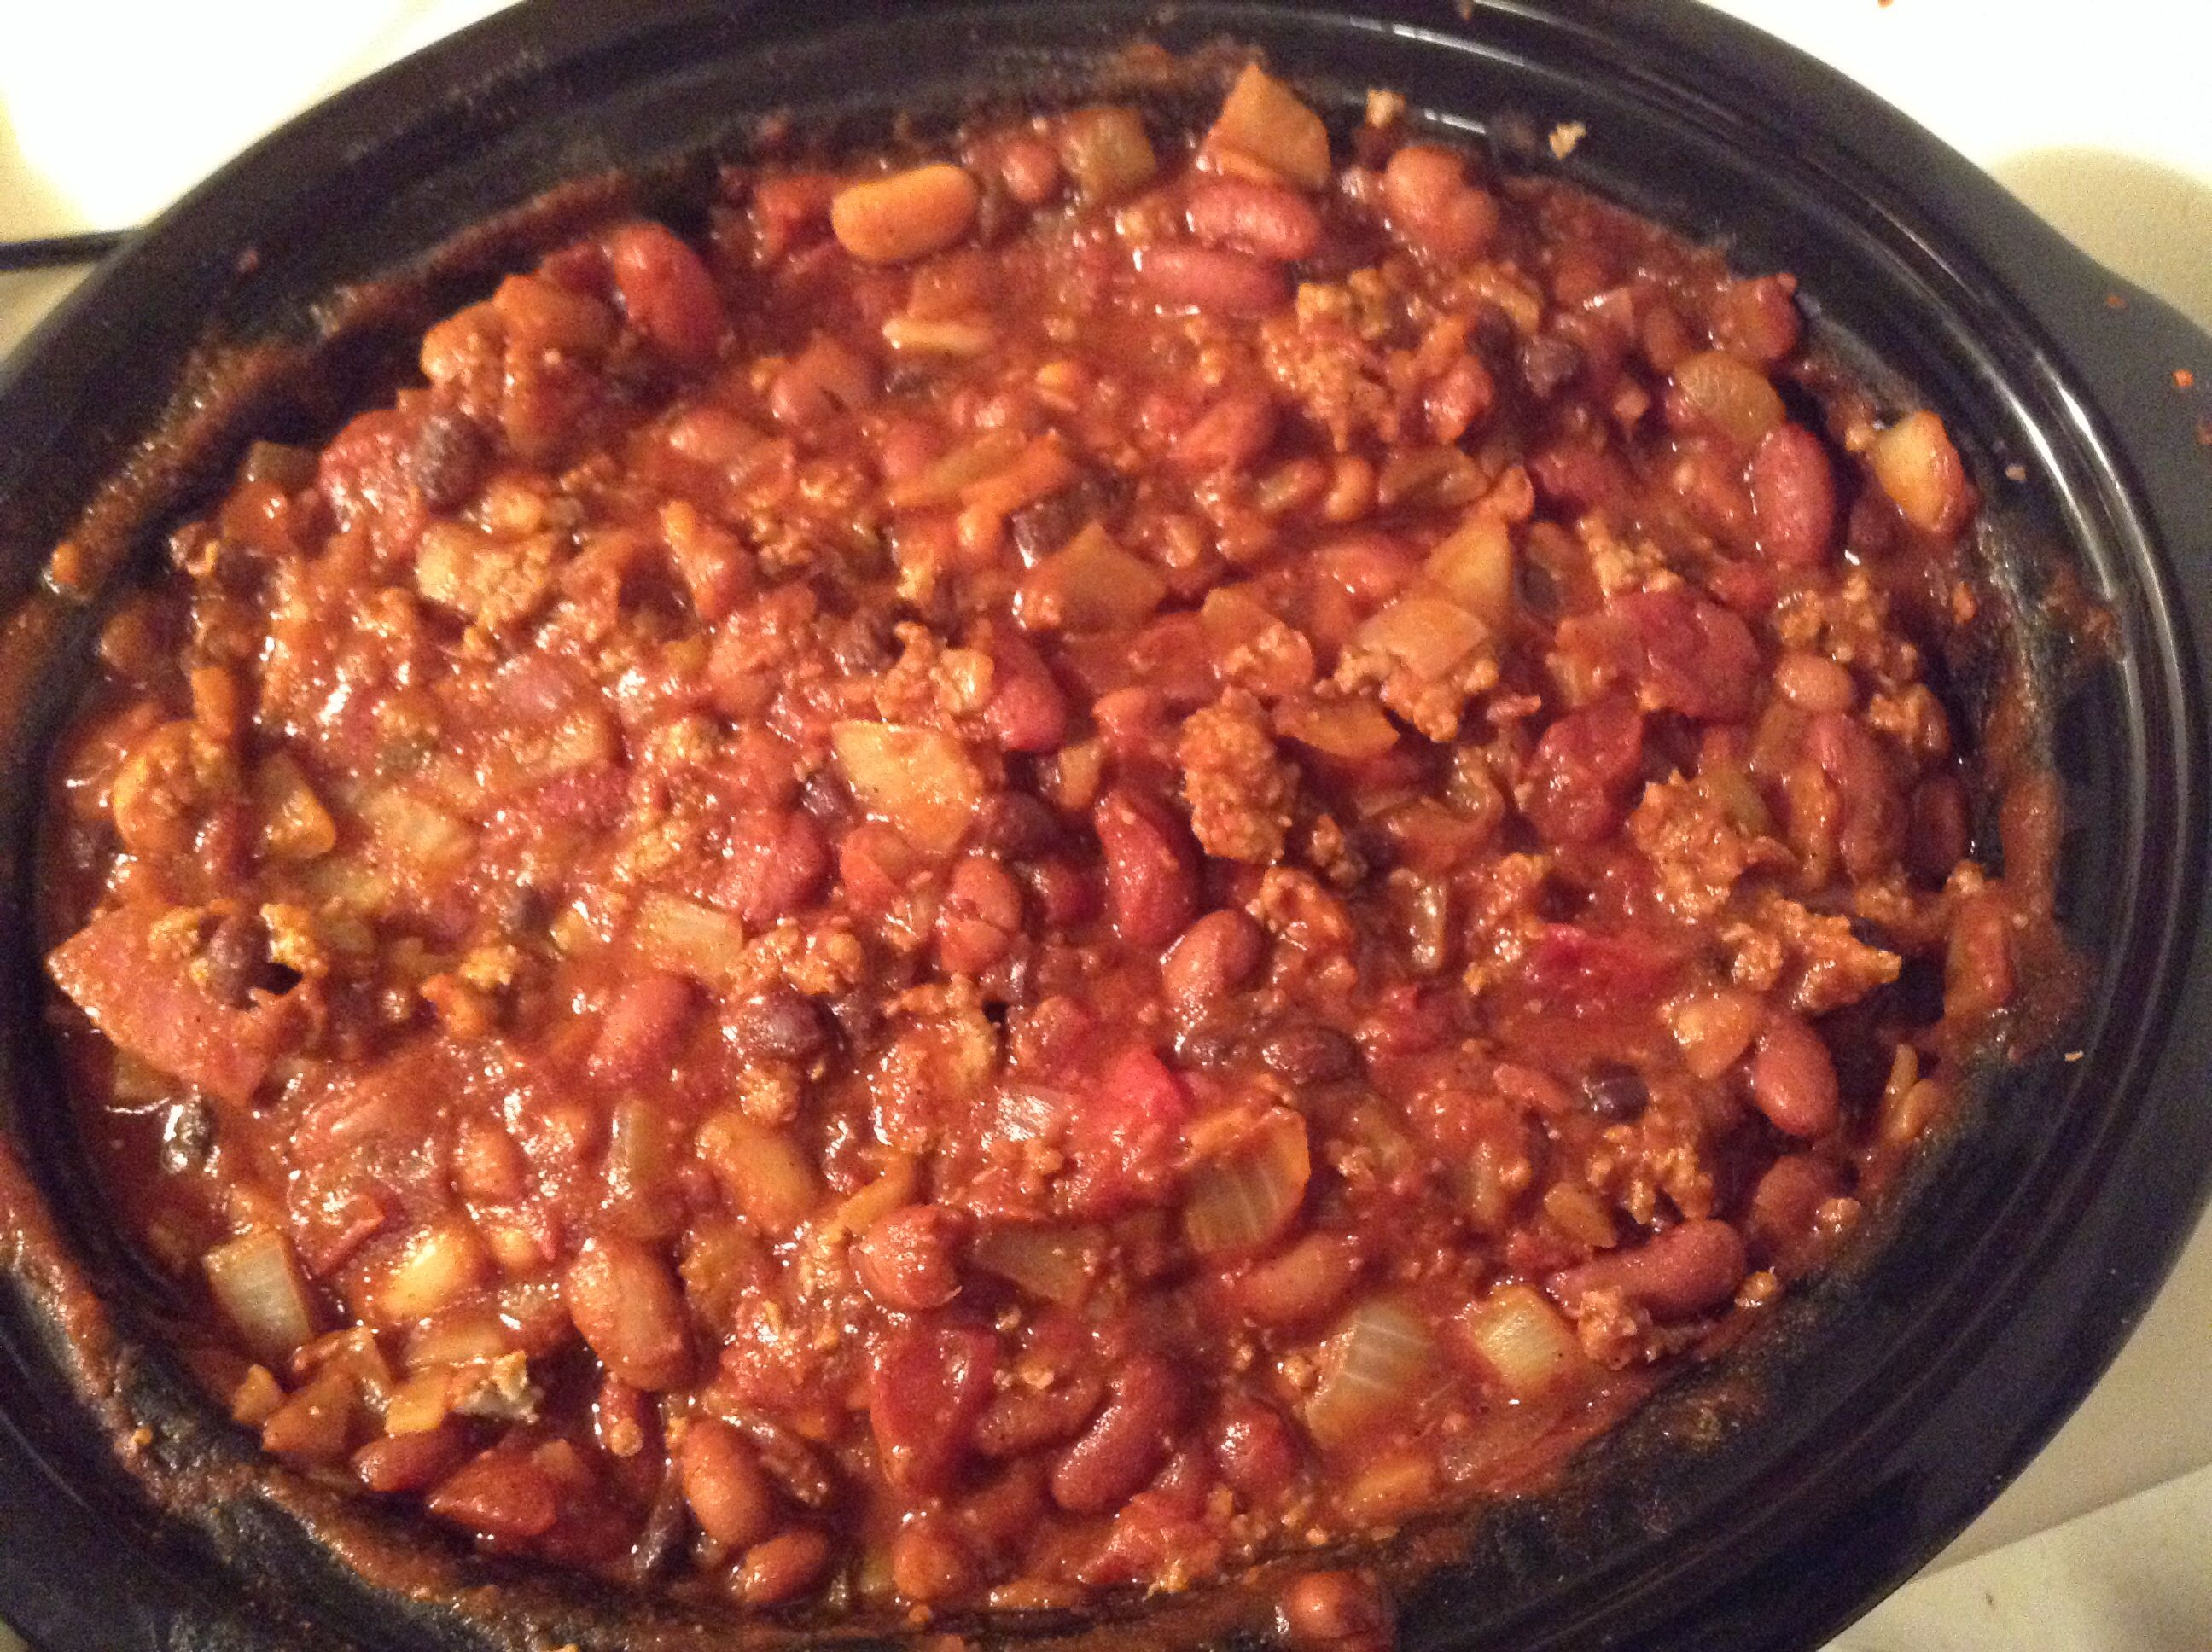 What Ever I Have In The House Chili 2 Cans Chili Hot Beans 1 Can Black Beans Drained And Rinsed 1 Can White Kidney Beans Ground Turkey Chili Food Sweet Onion